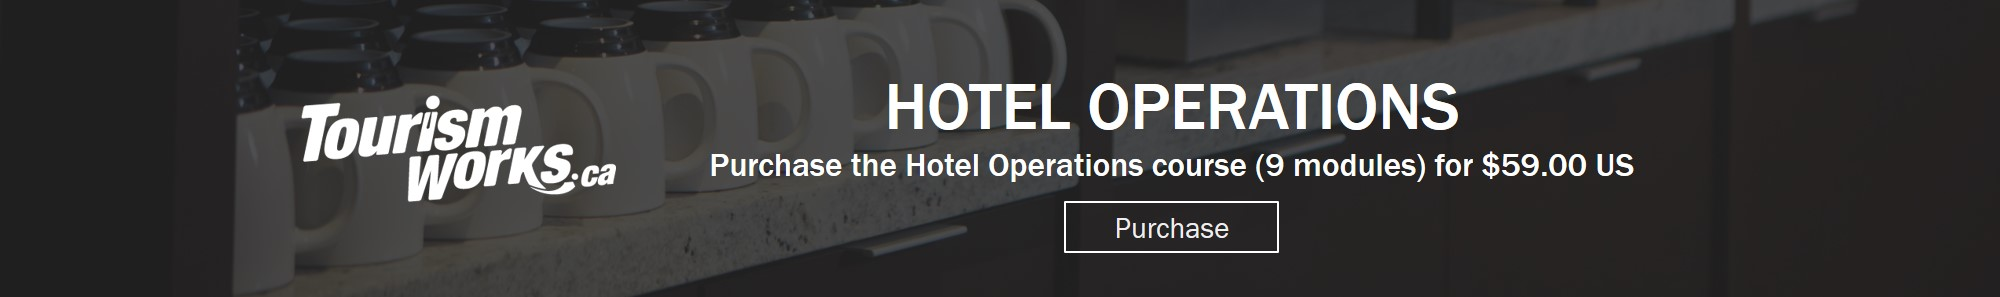 Hotel Operations